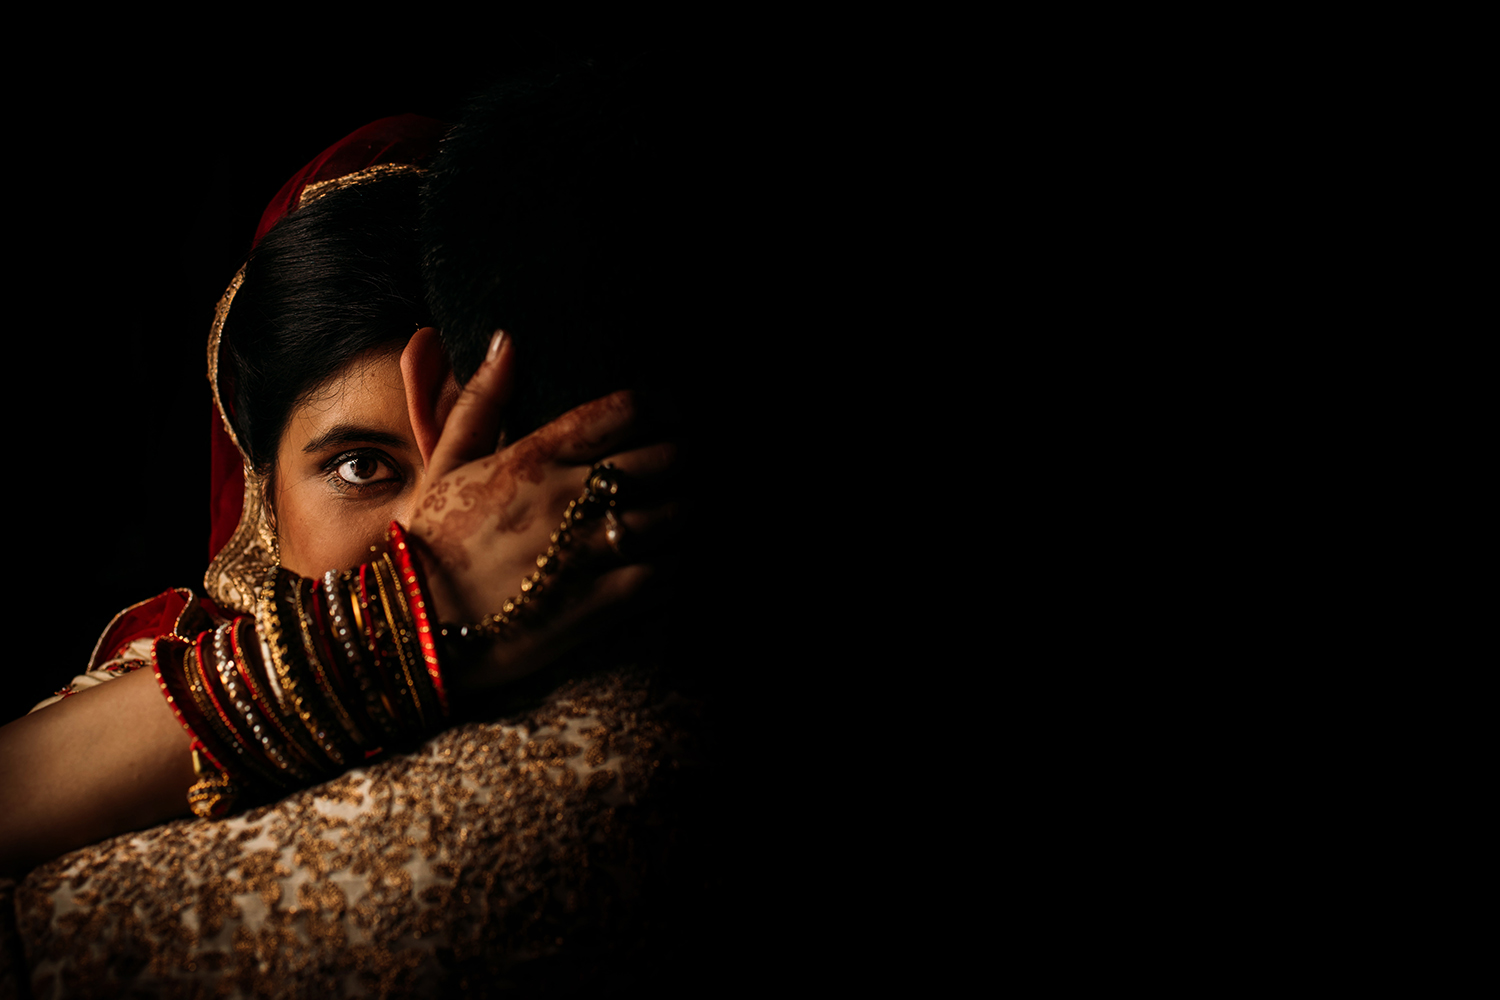 posed shot of bride staring into the camera with traditional Indian hand details and stunning light